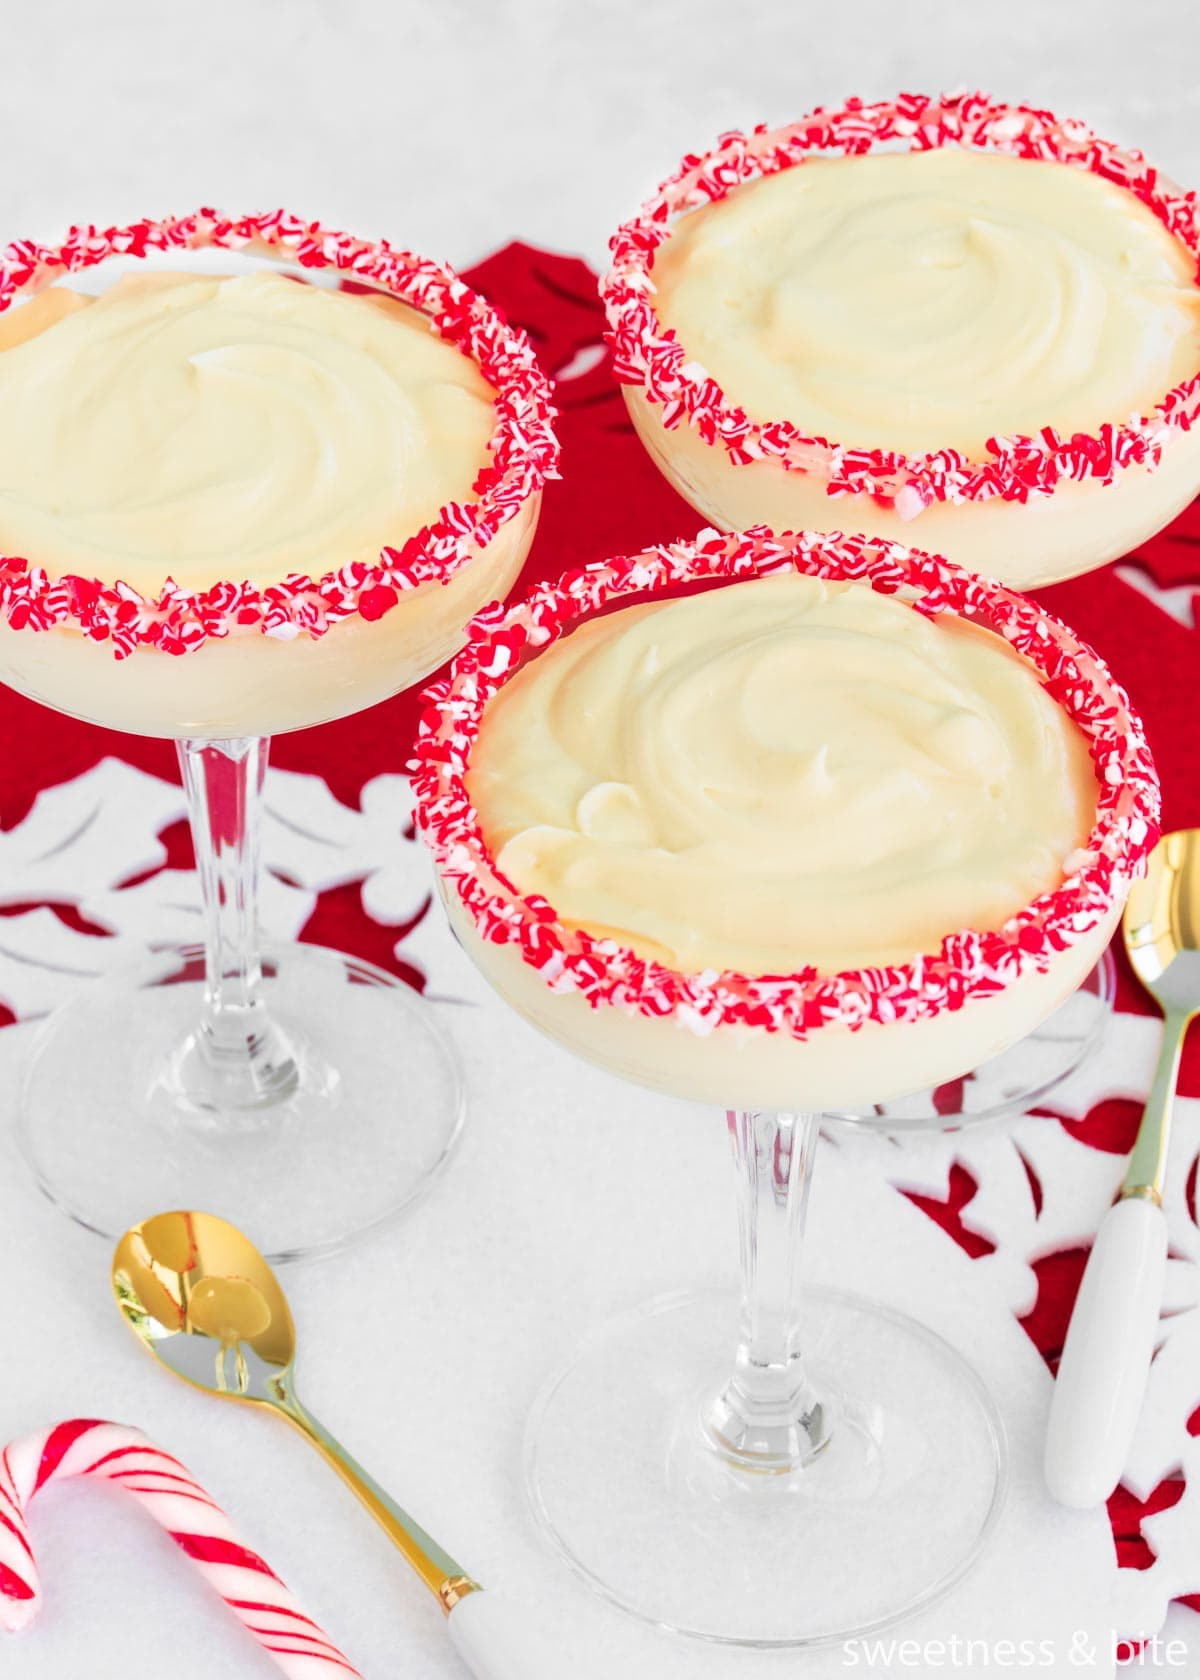 Three cocktail glasses with mousse.